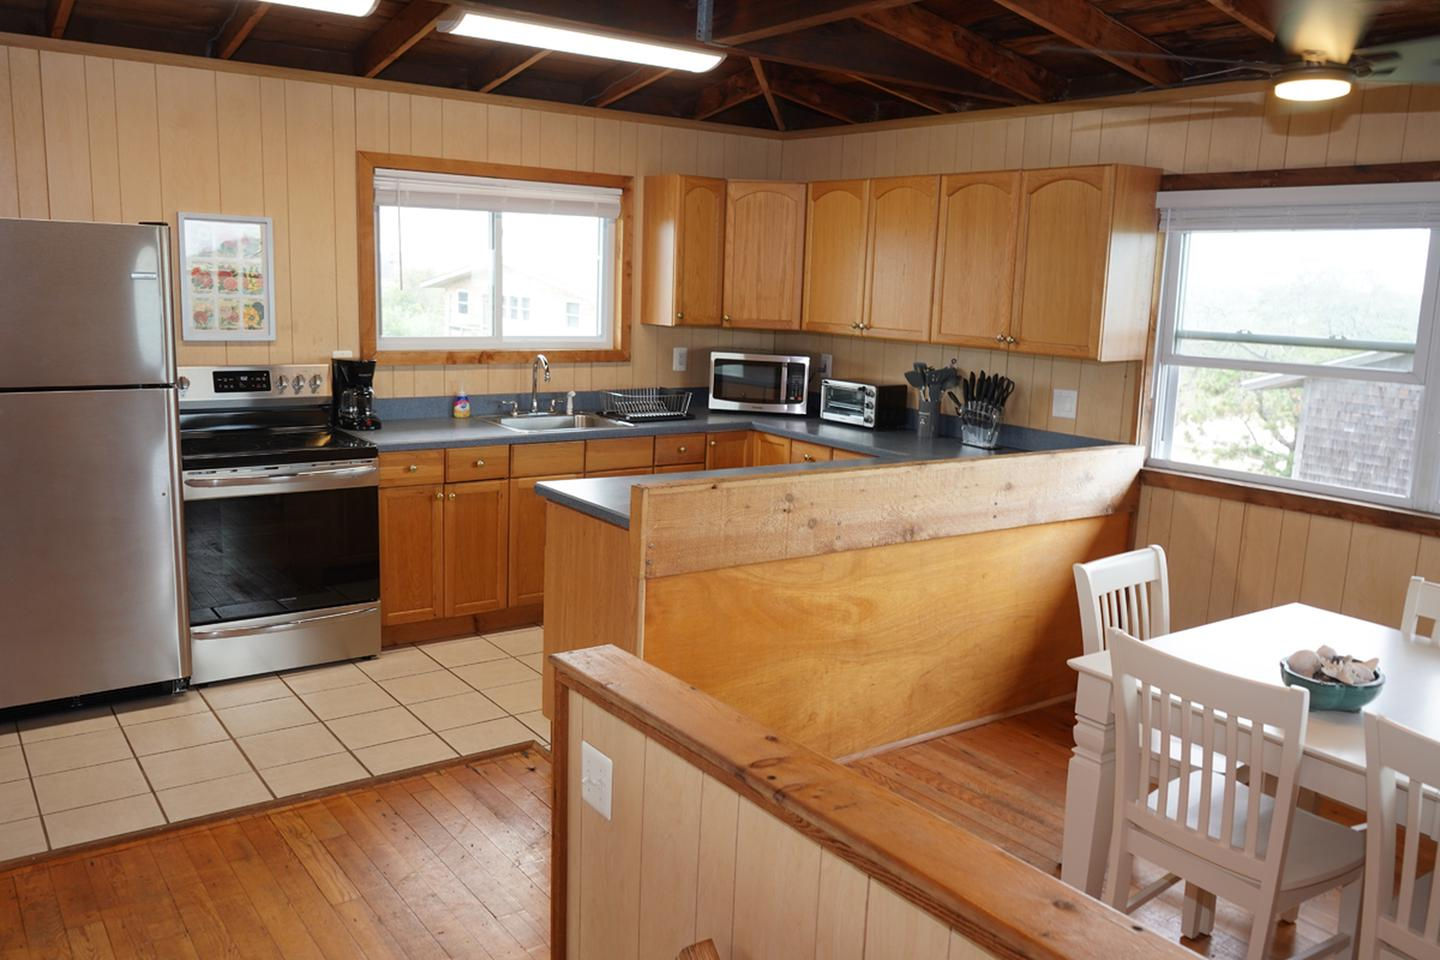 A fully furnished kitchen at a beach house.Fully furnished kitchen.